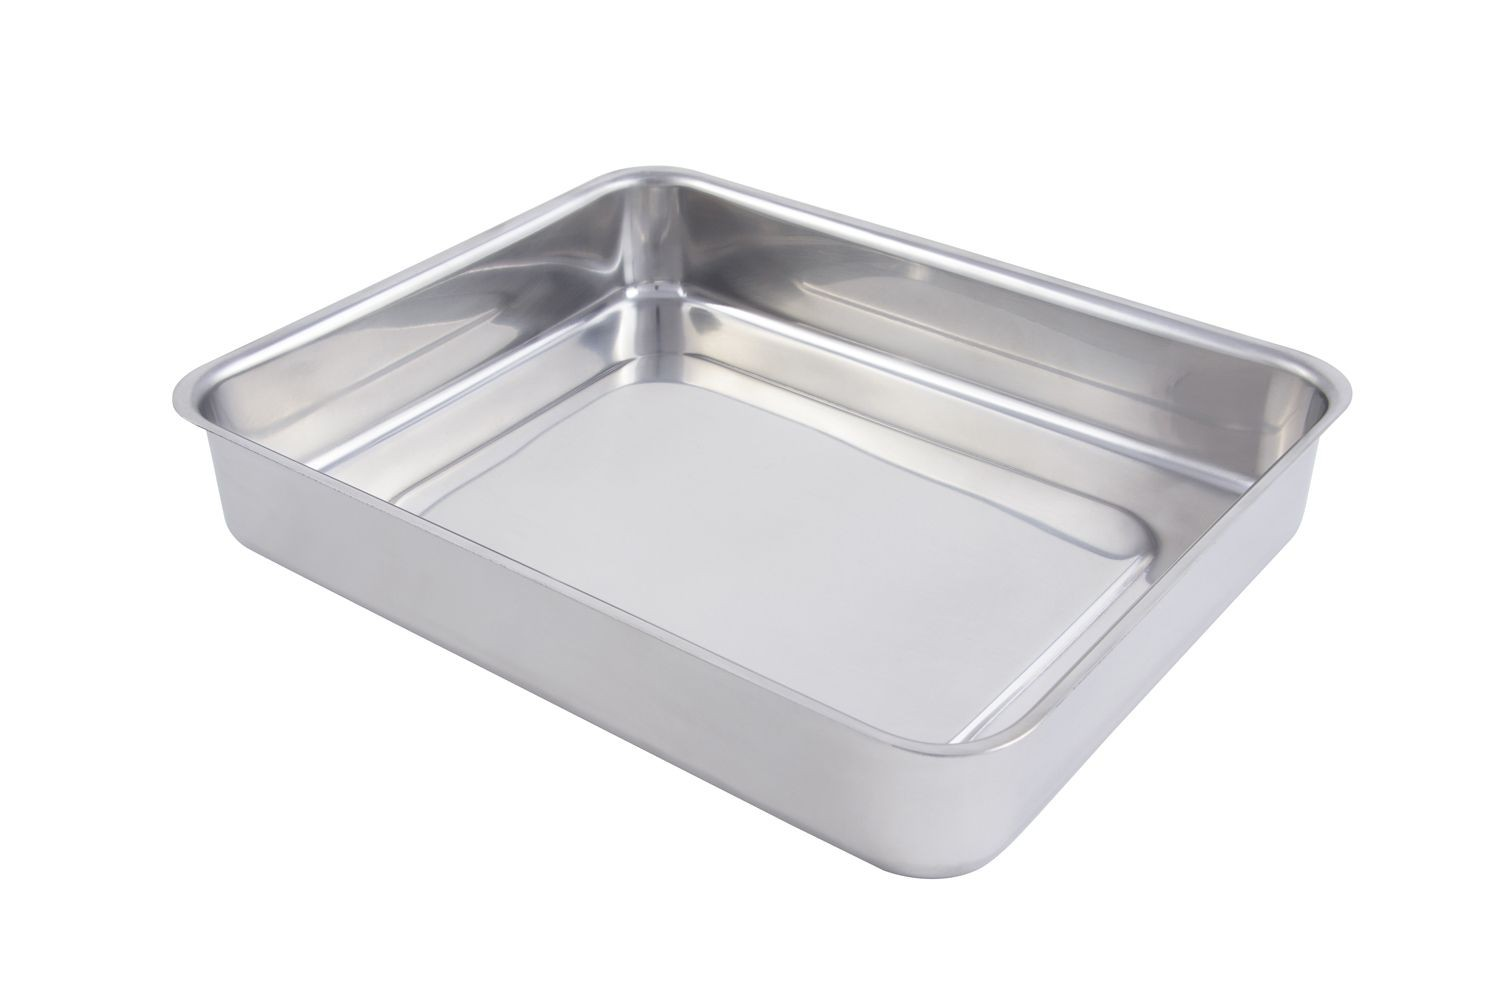 Bon Chef 60016 Cucina Small Stainless Steel Food Pan, 3 Qt.